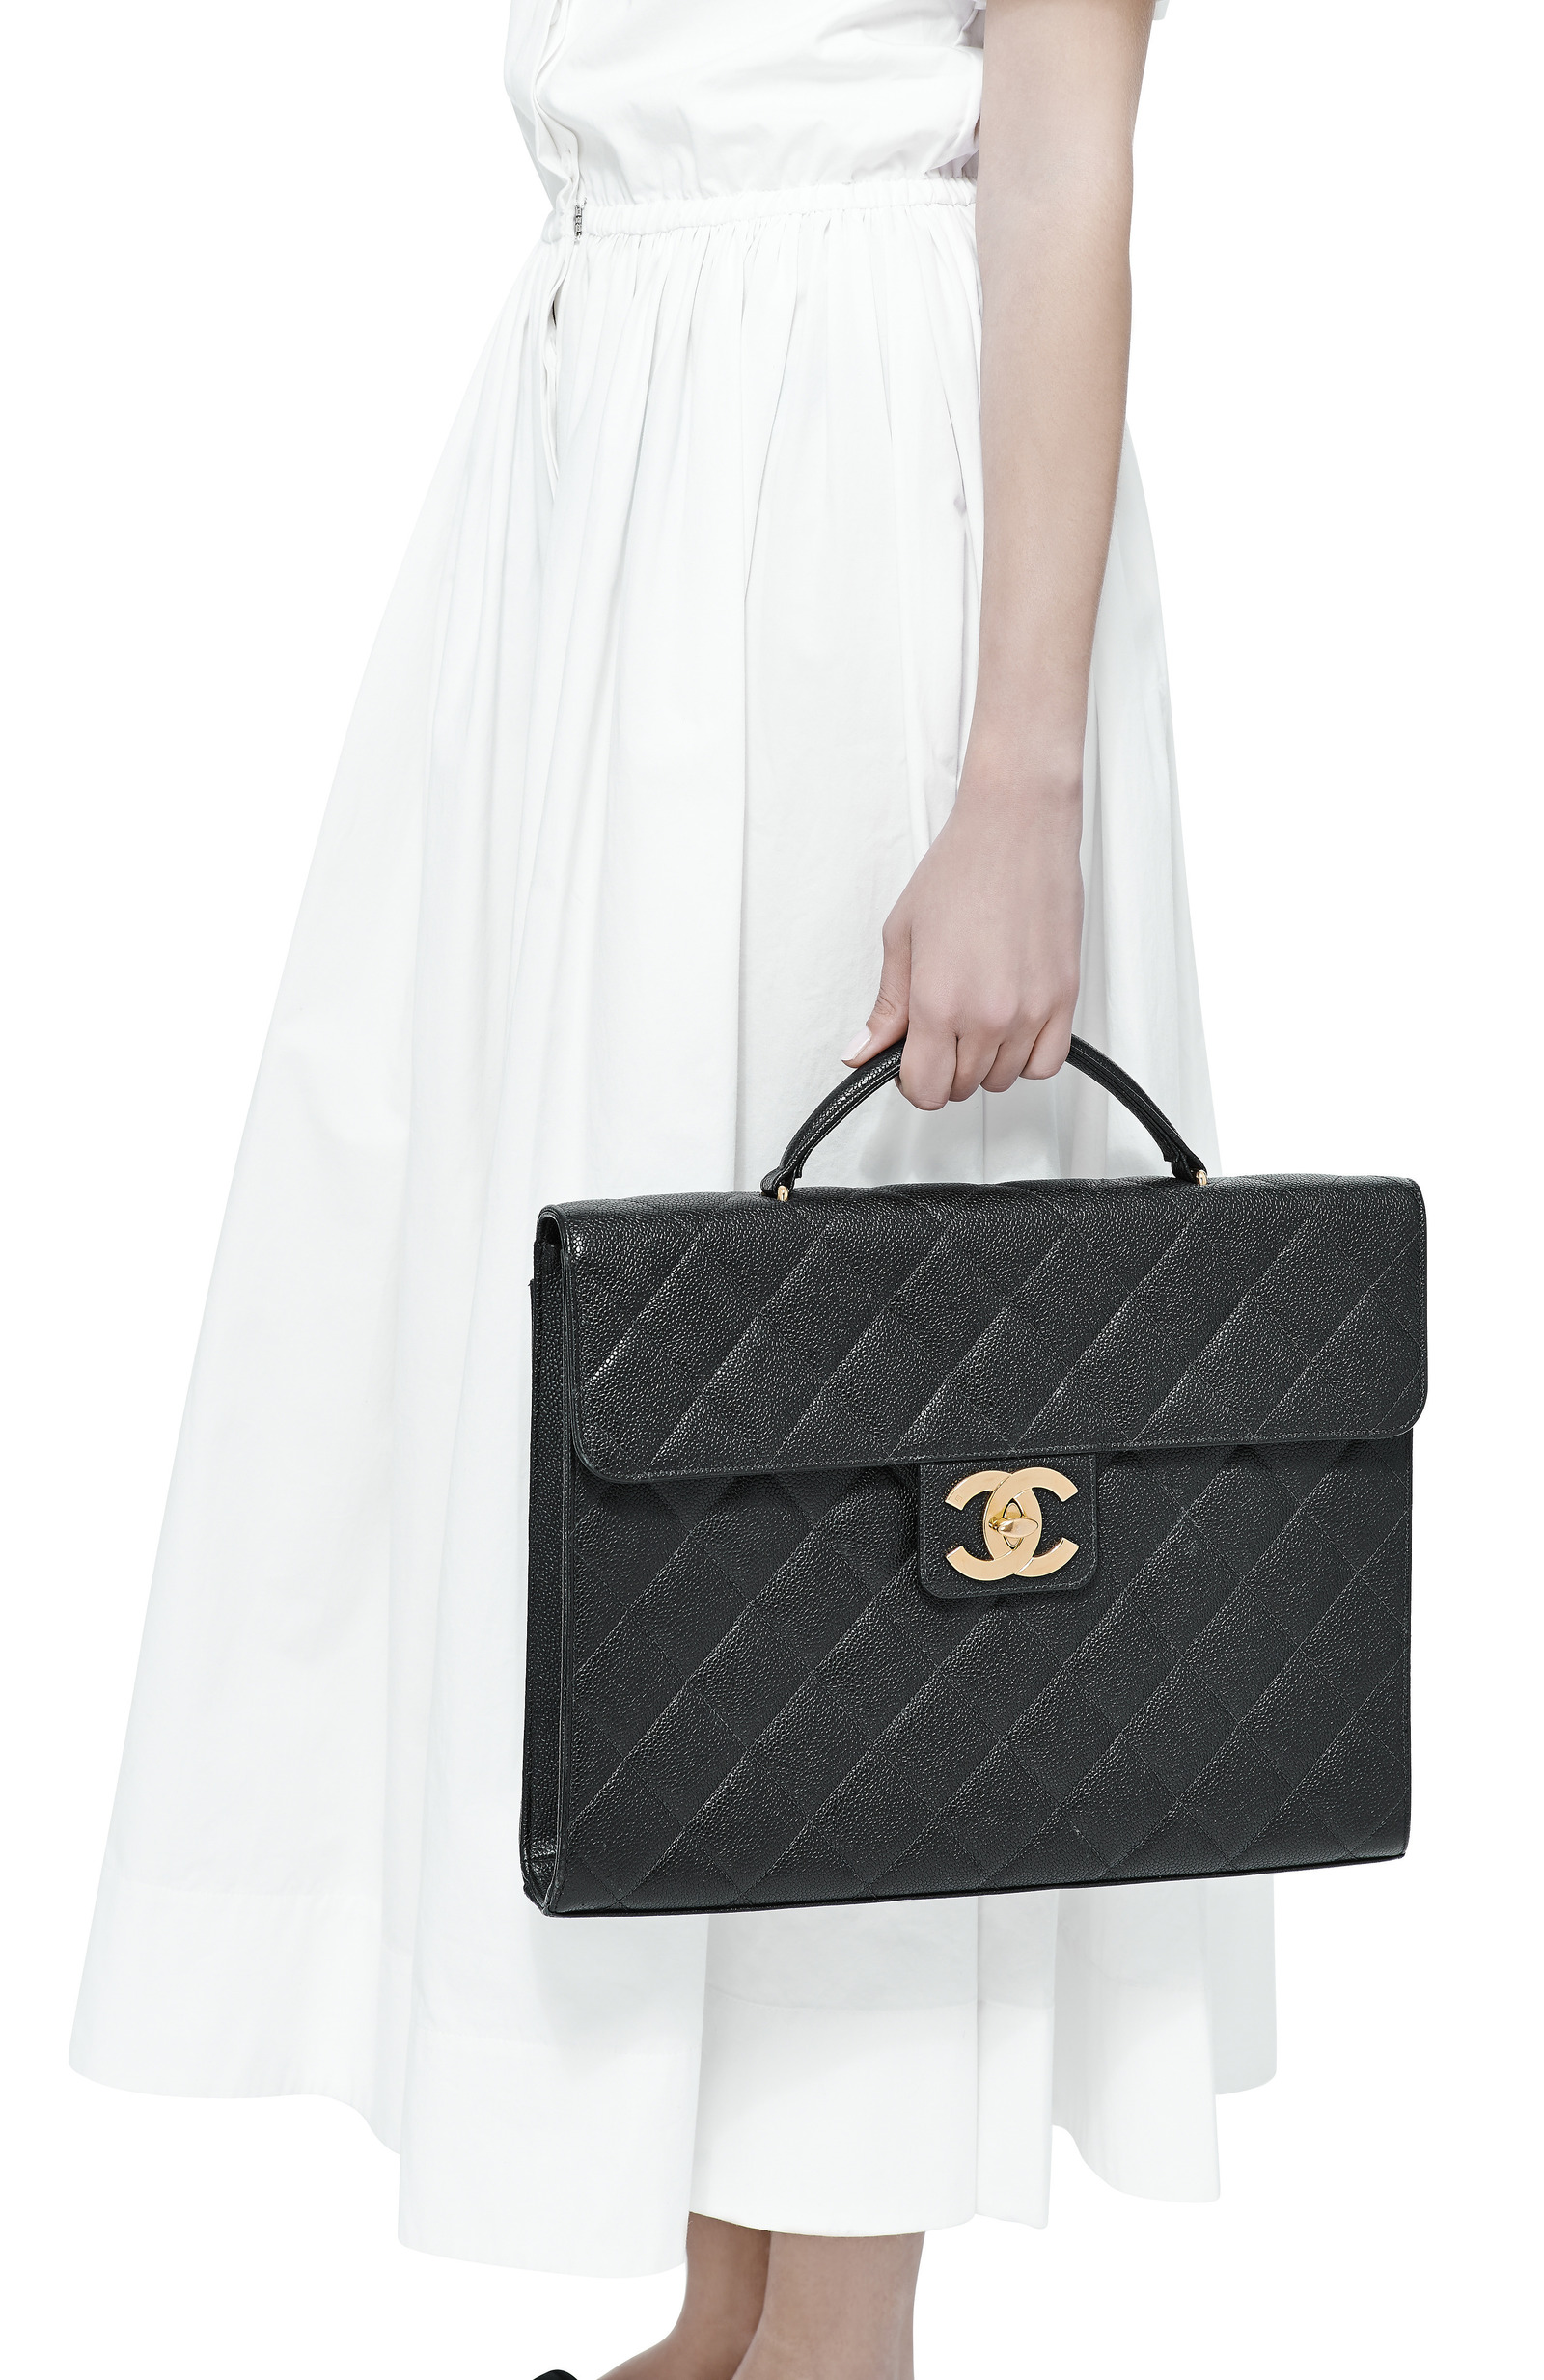 b75ef0bd9699 What Goes Around Comes AroundVintage Chanel Black Caviar Briefcase. CLOSE.  Loading. Loading. Loading. Loading